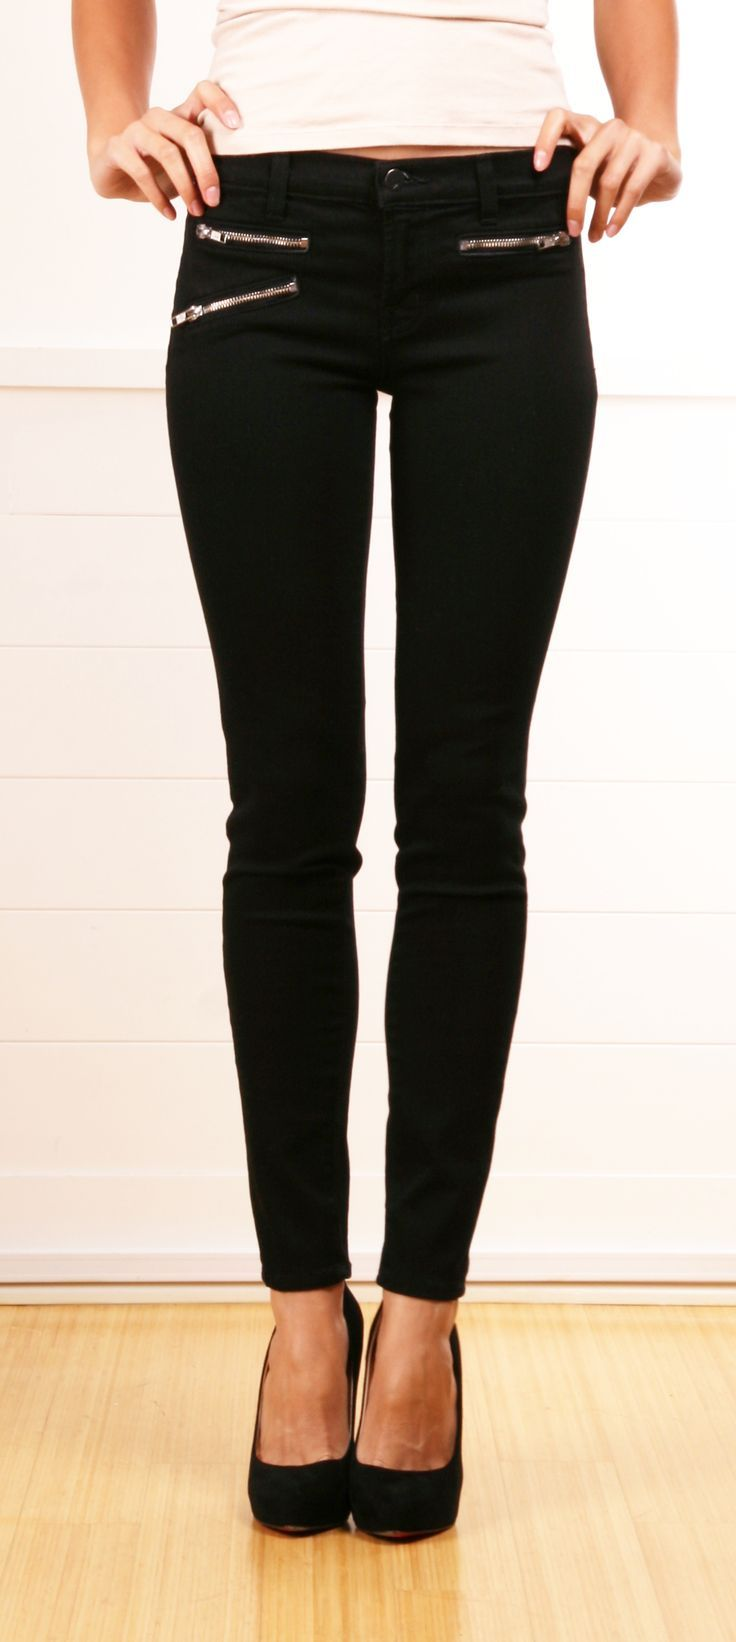 Black skinny pants with zipper detailing <3 So edgy and yet classy ...